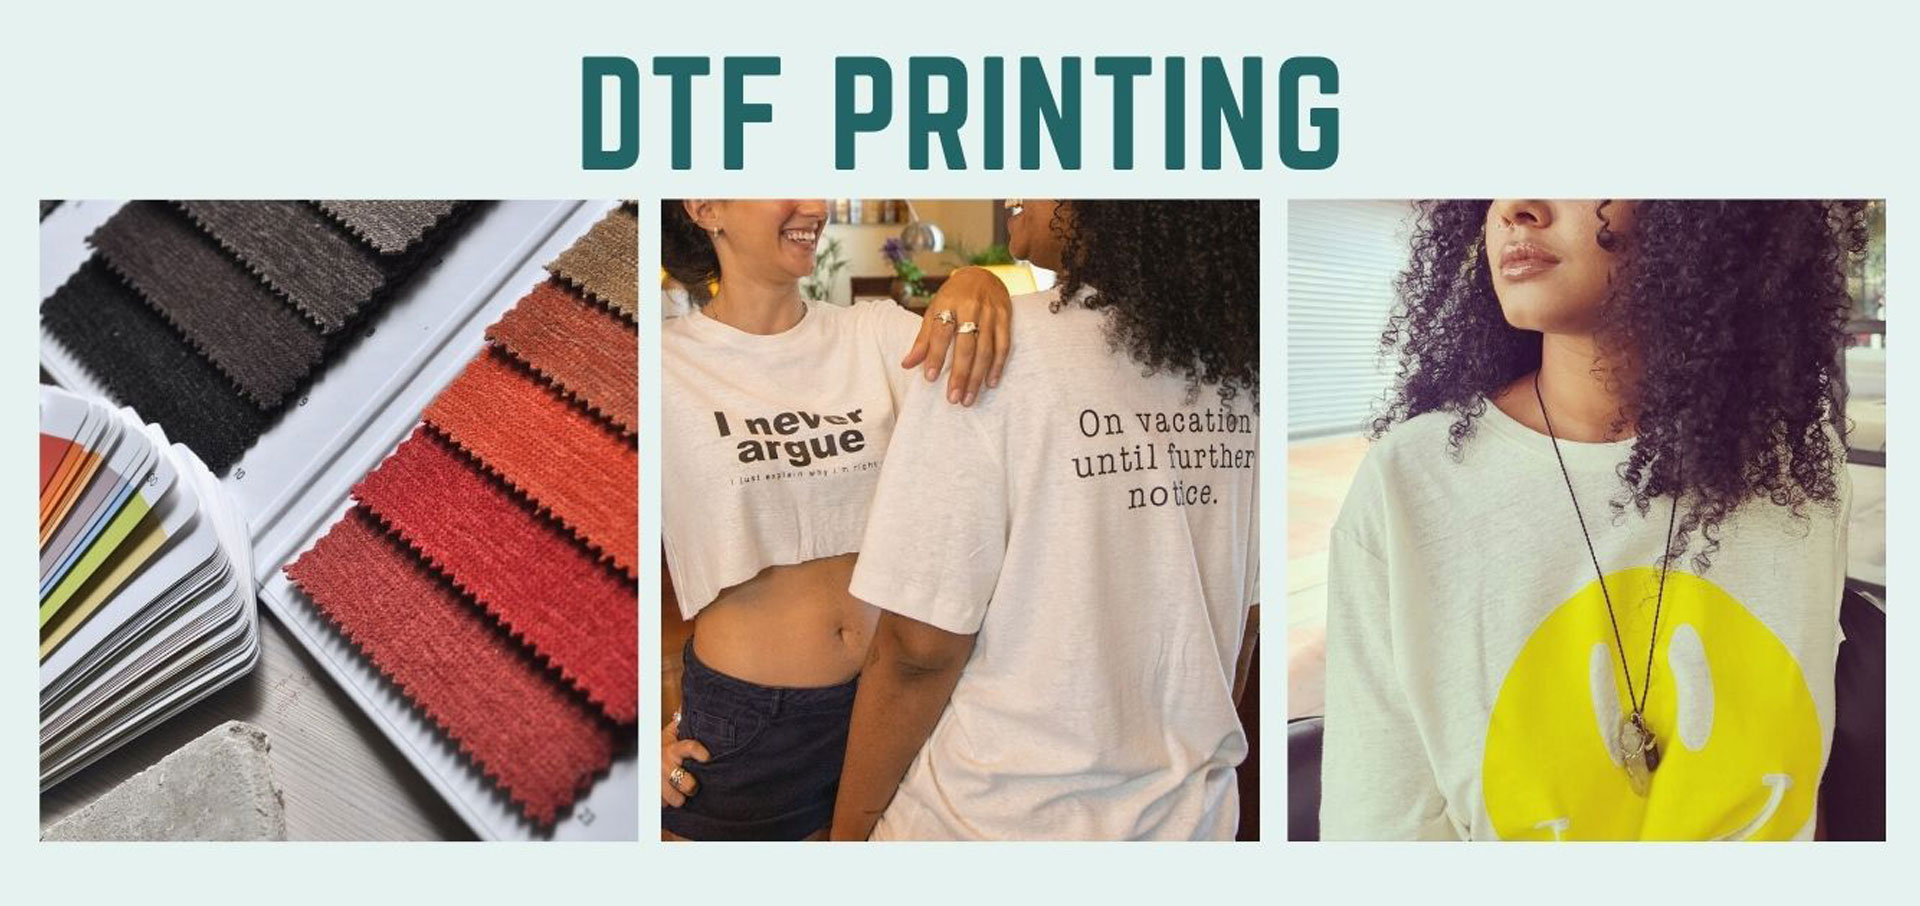 What is DTF Printing